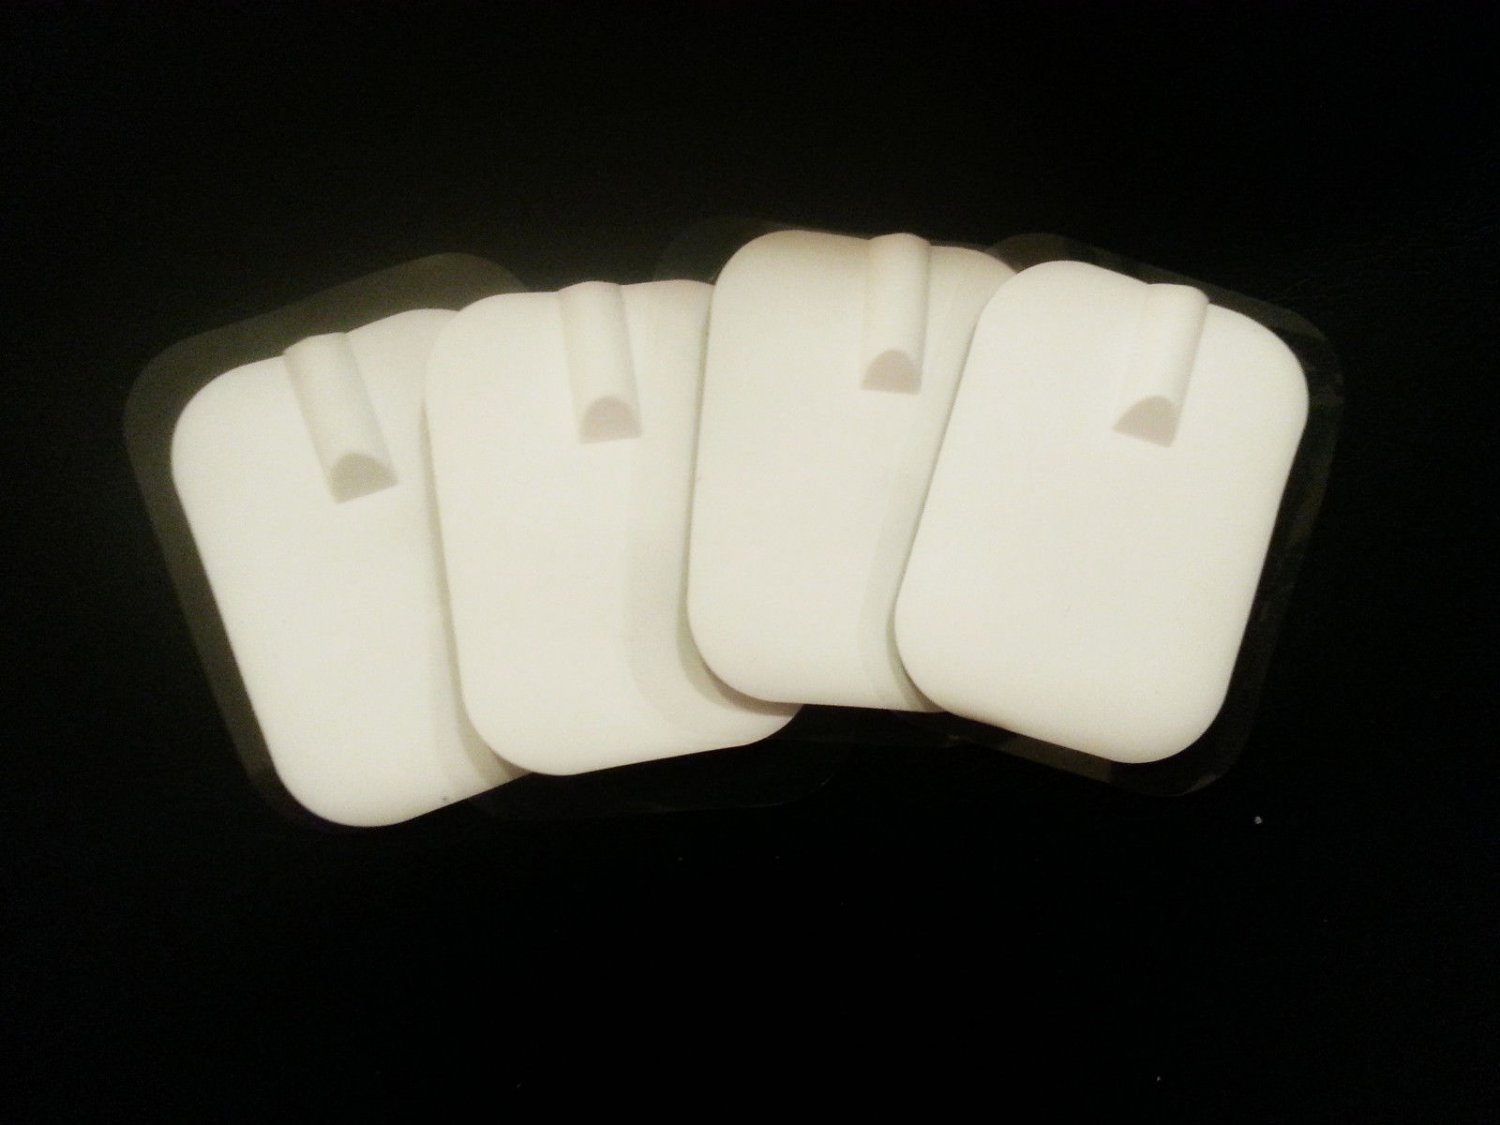 Electrode Pads Silicone Rubber (4) 2 Pairs 2mm Connection Massage Pads Reuse